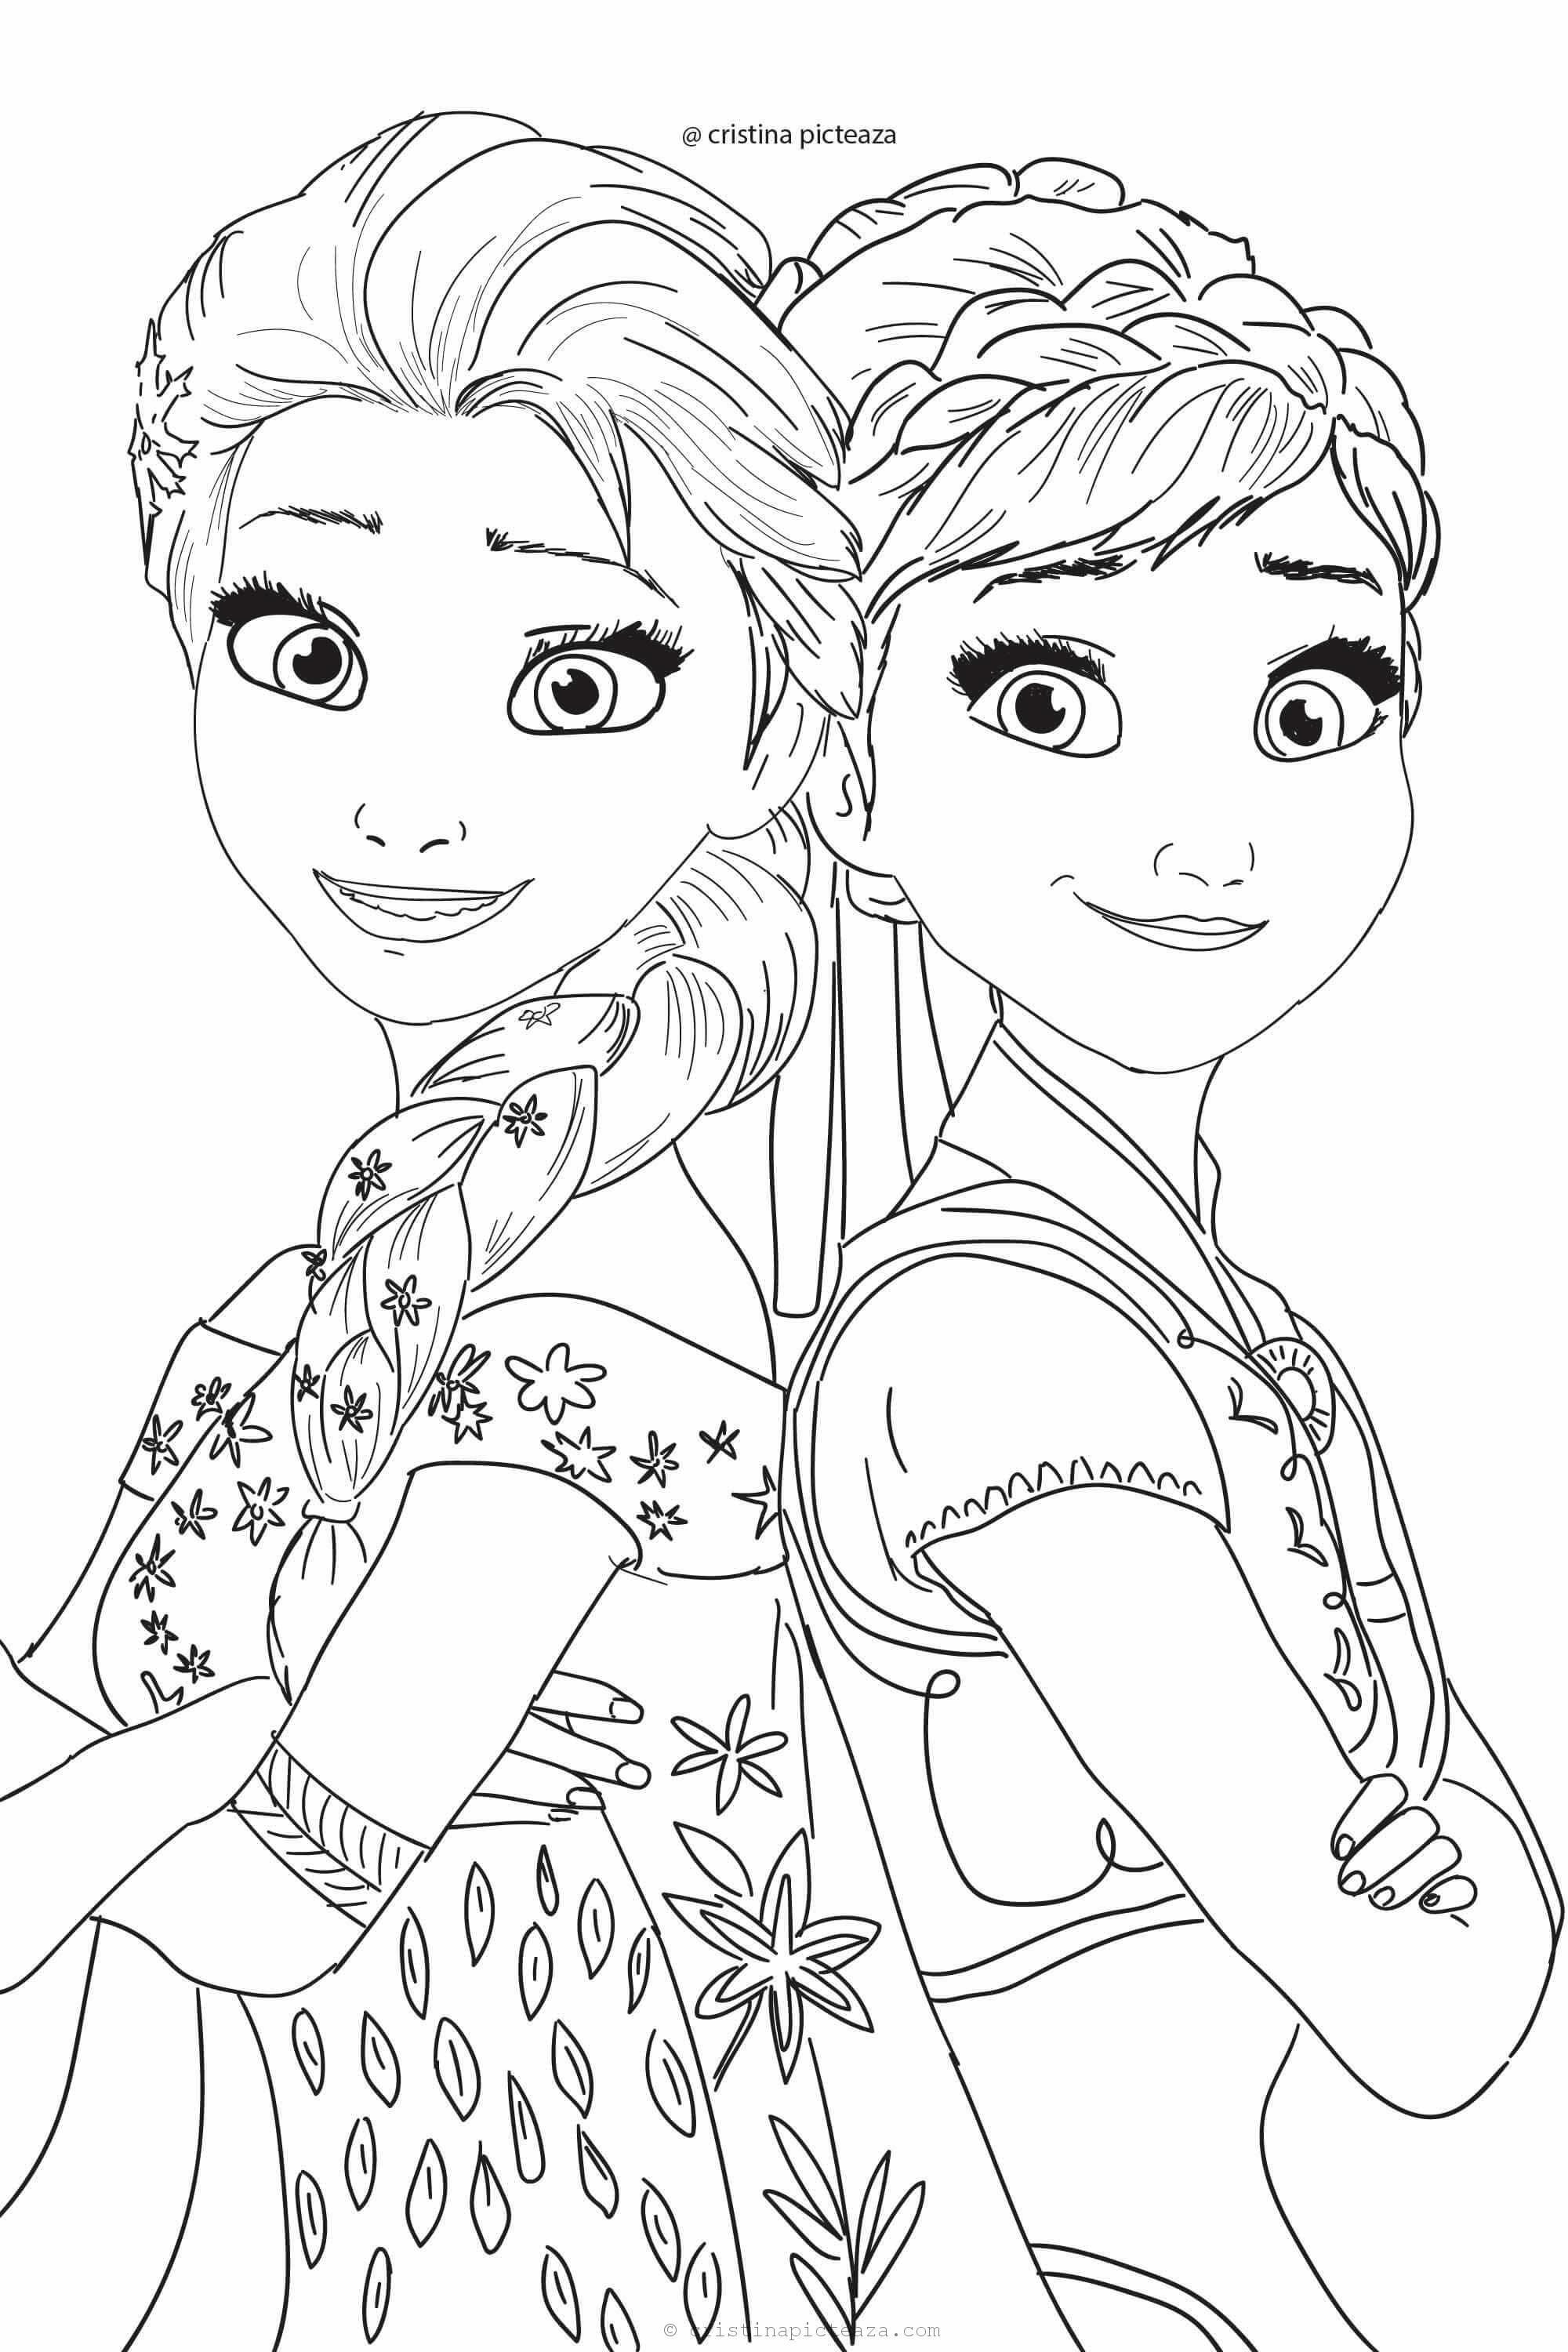 frozen coloring images peaceful free printable frozen coloring pages russell images coloring frozen